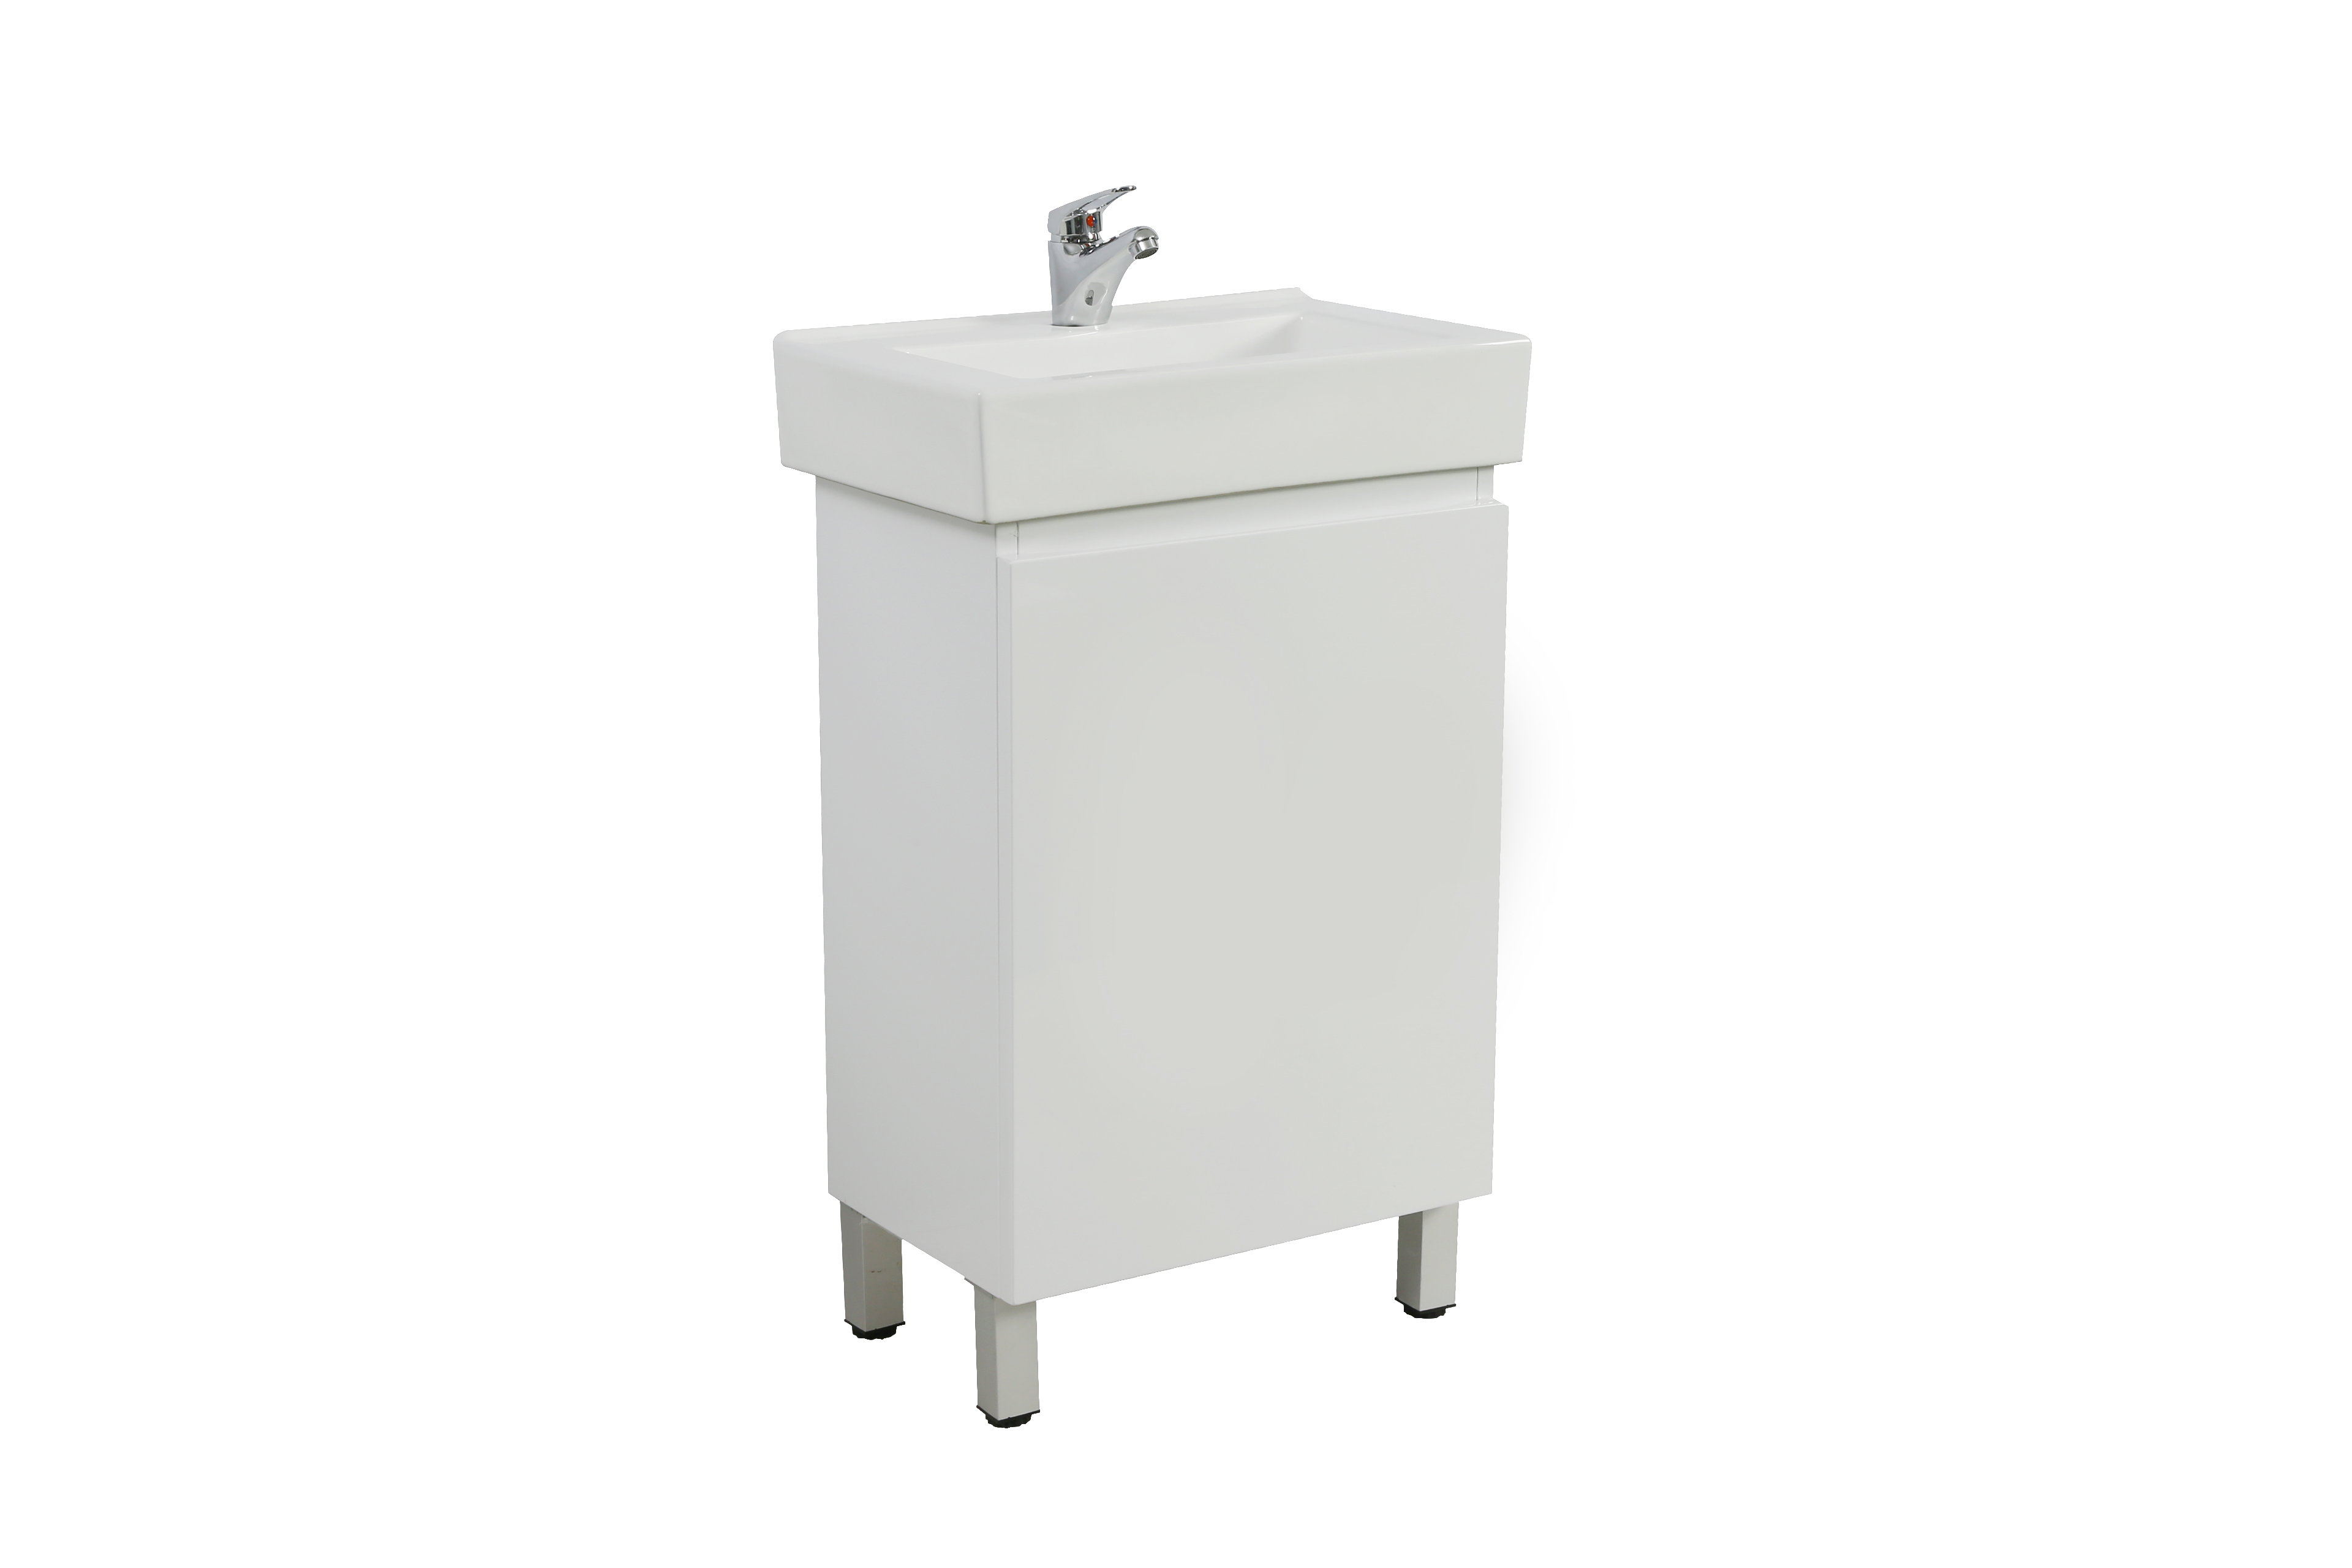 White High gloss painting MDF Vanity Gloss White M53LG